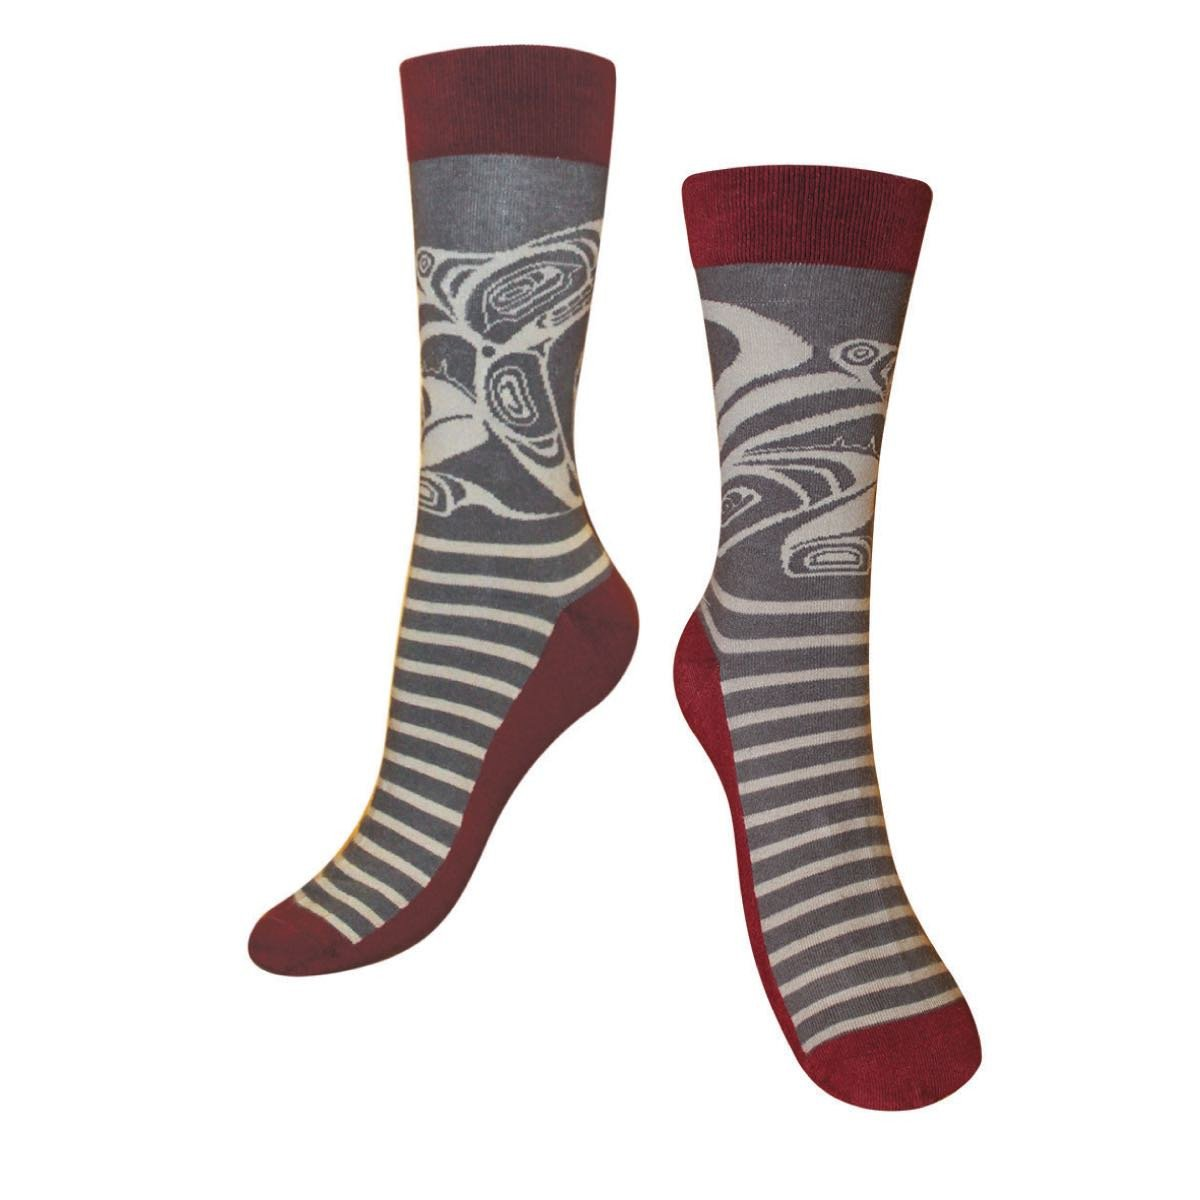 Art Socks by Trevor Angus, Gitxsan